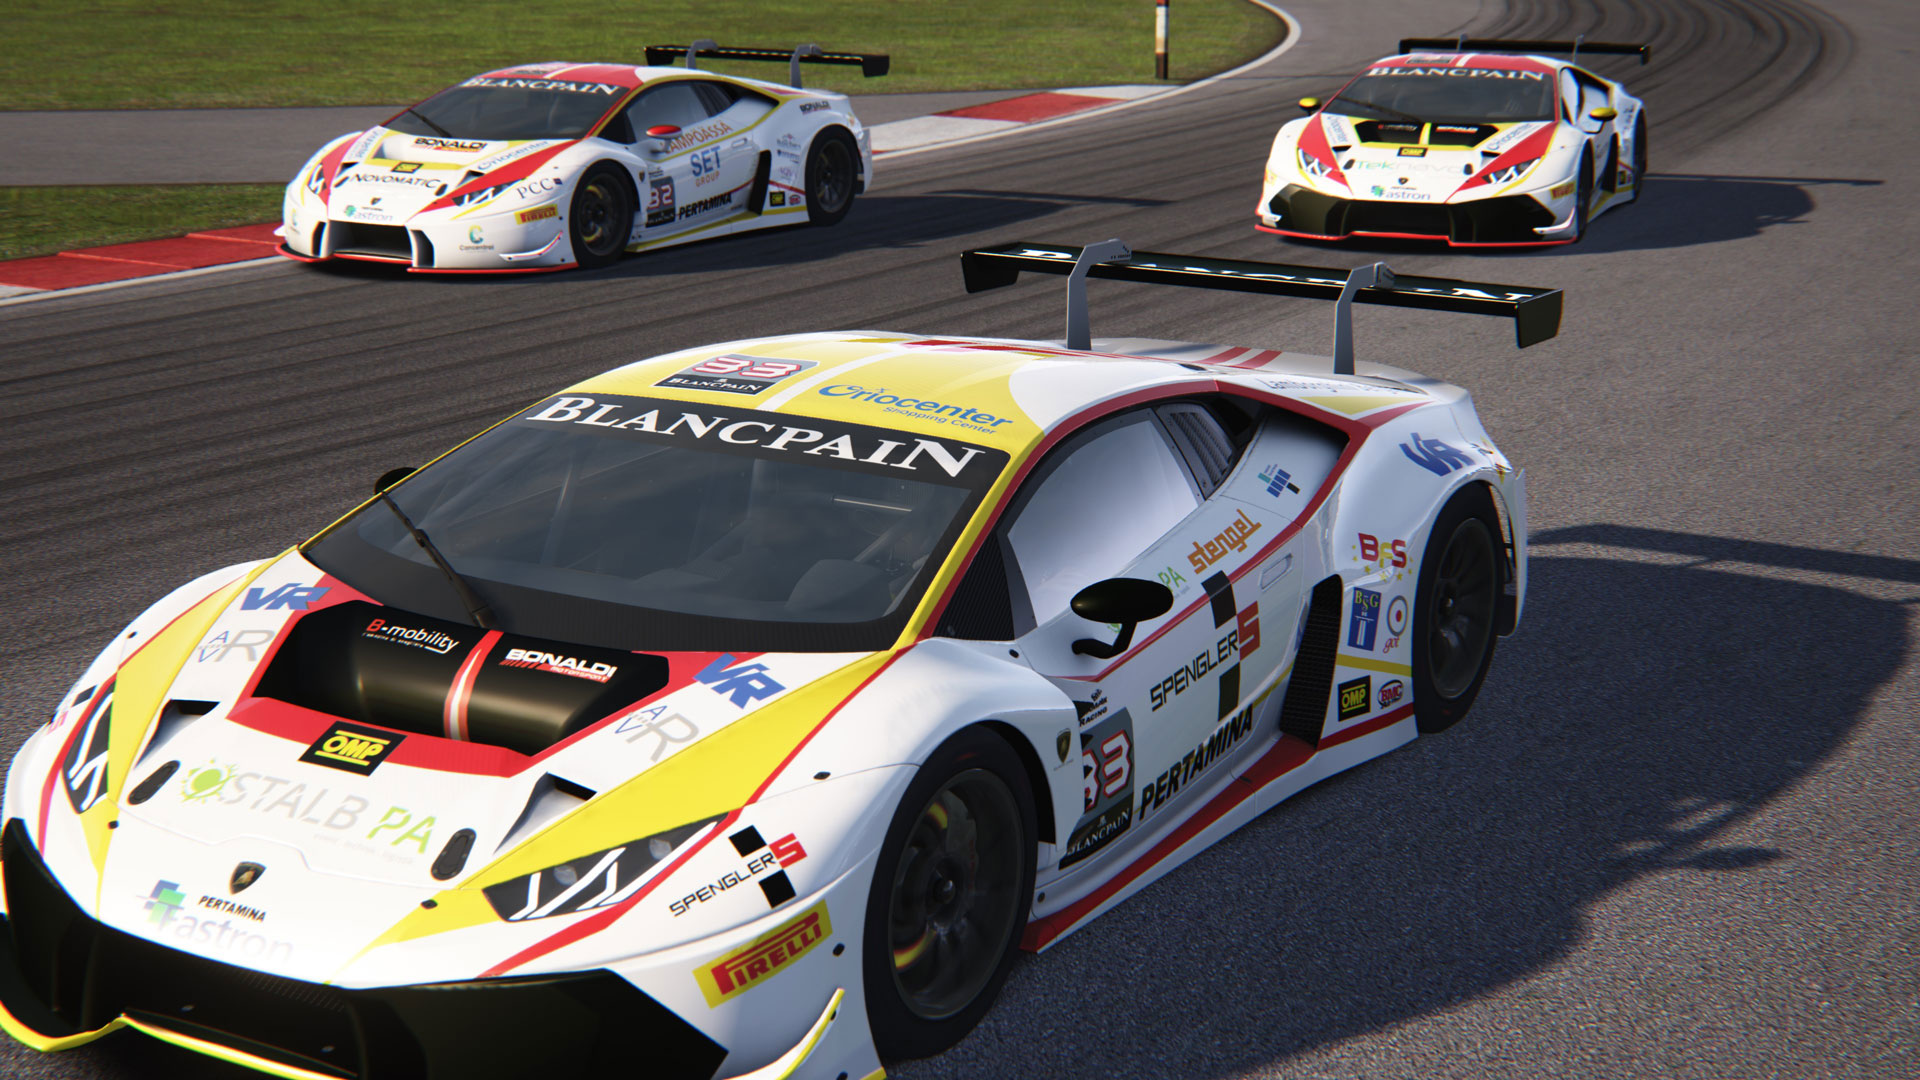 Screenshot_ks_lamborghini_huracan_gt3_silverstone-international_30-10-115-19-14-2.jpg